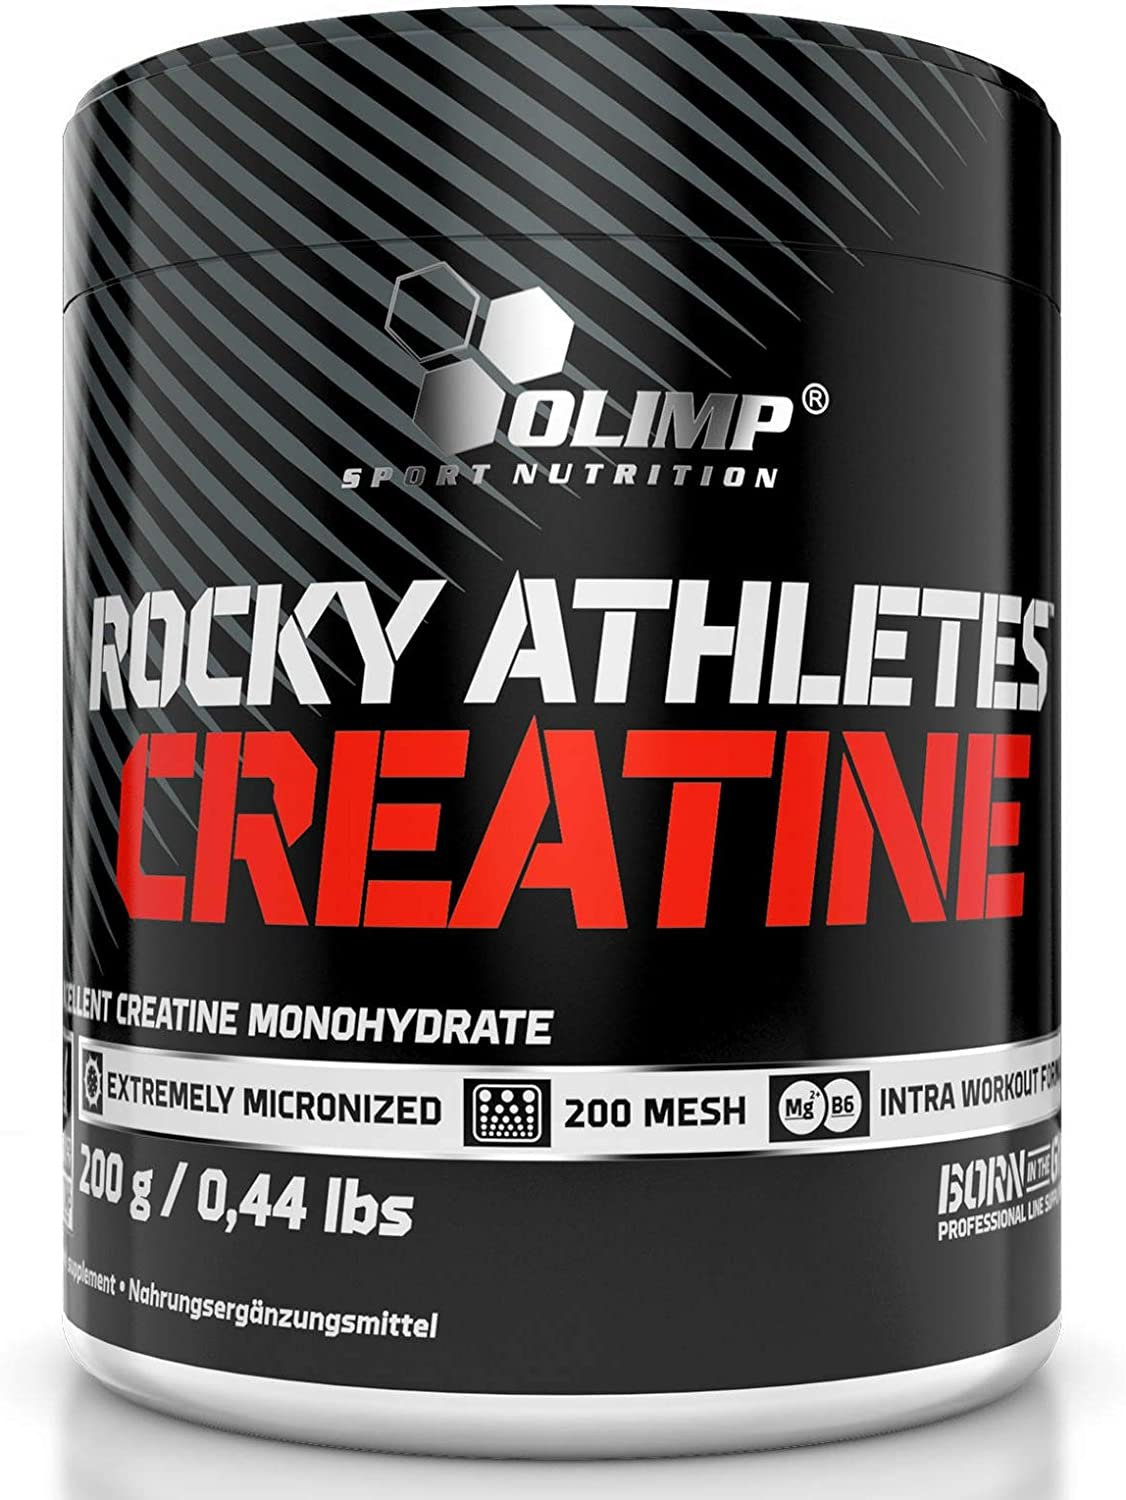 Excellence Rocky Athletes safety CREATINE MONOHYDRATE 200g - Anabolic Food Supplem